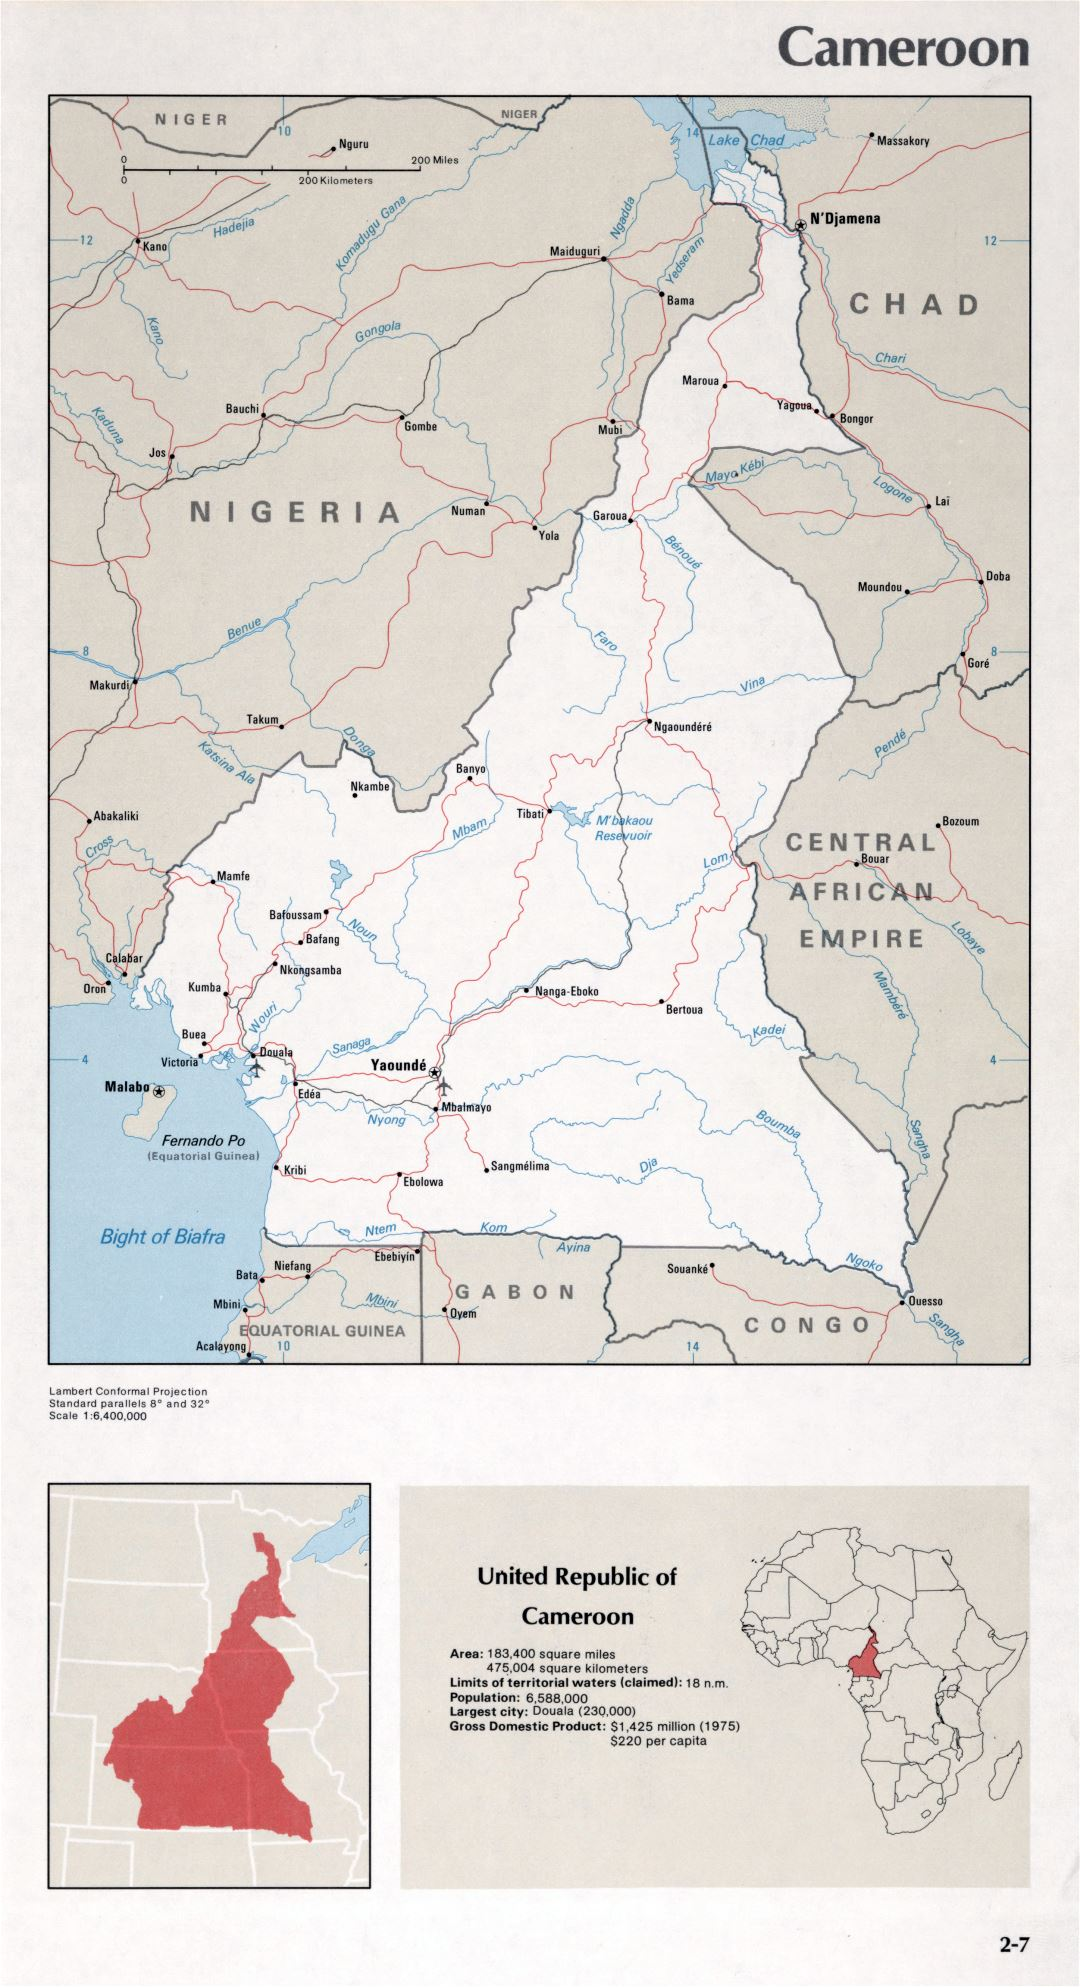 Map of Cameroon (2-7)